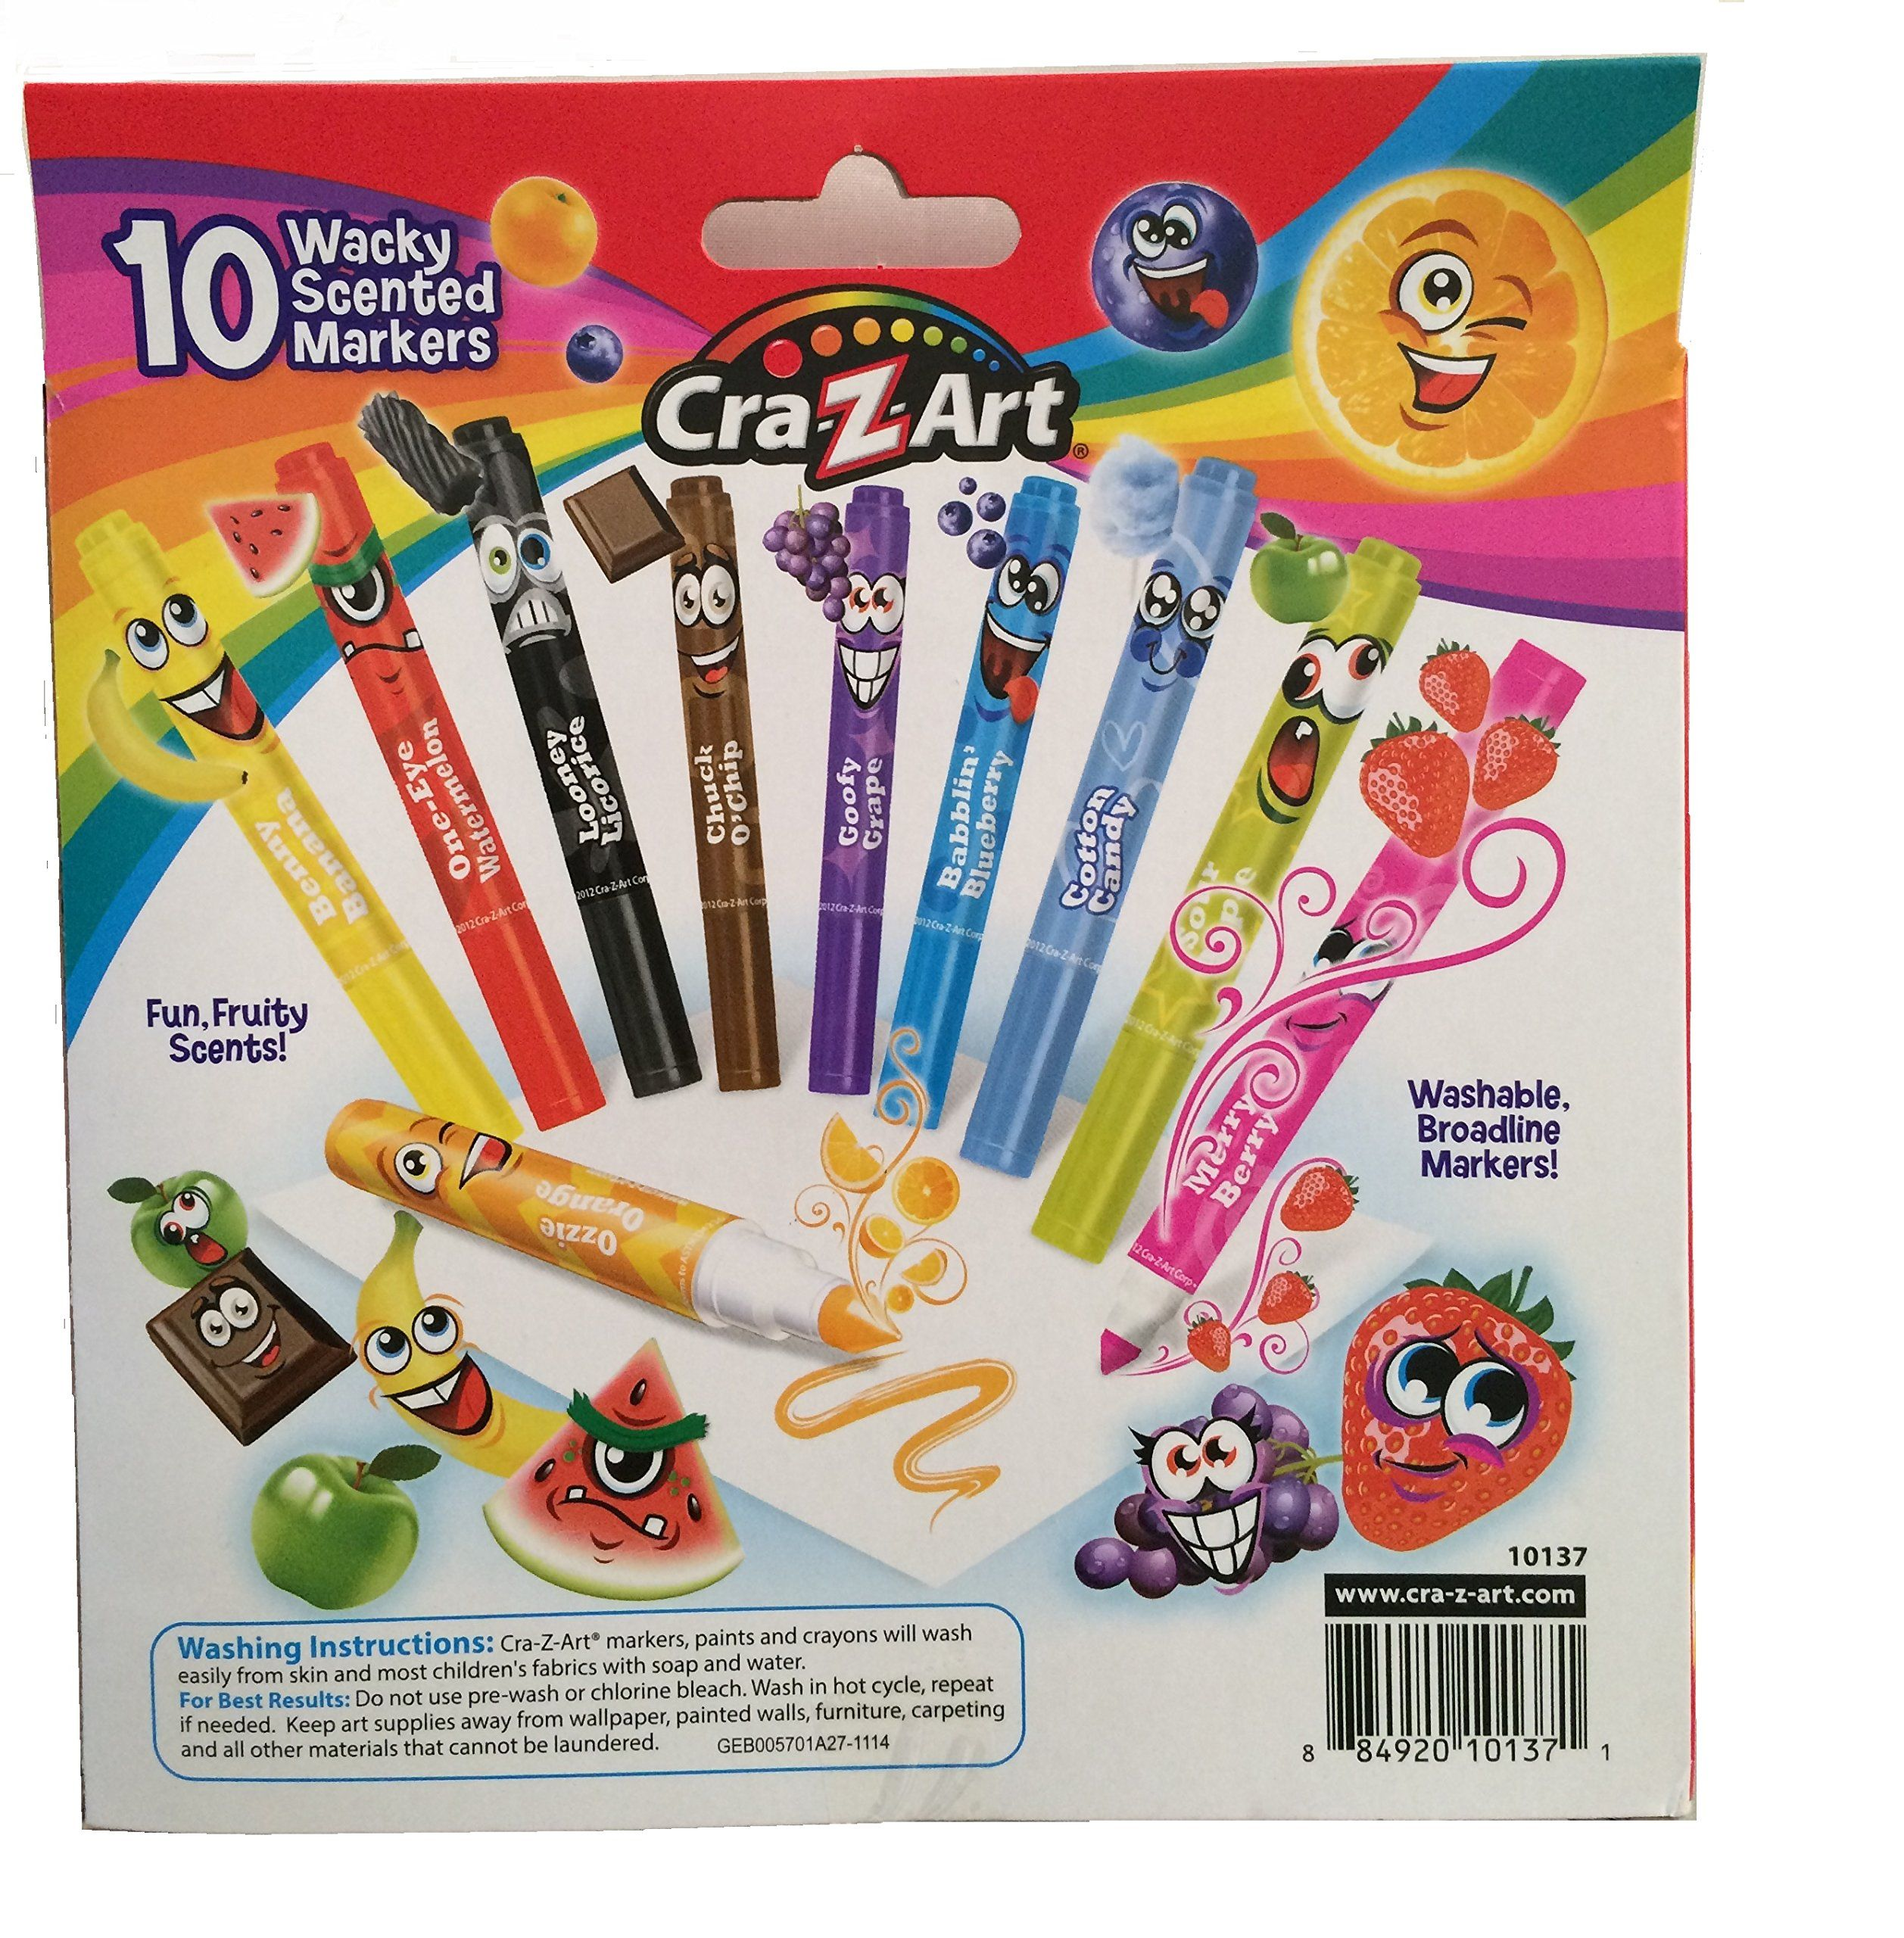 Uni-ball Scented Ink Rollerball Pens - Assorted Fruit/Sweet Scents, Gift  Pack